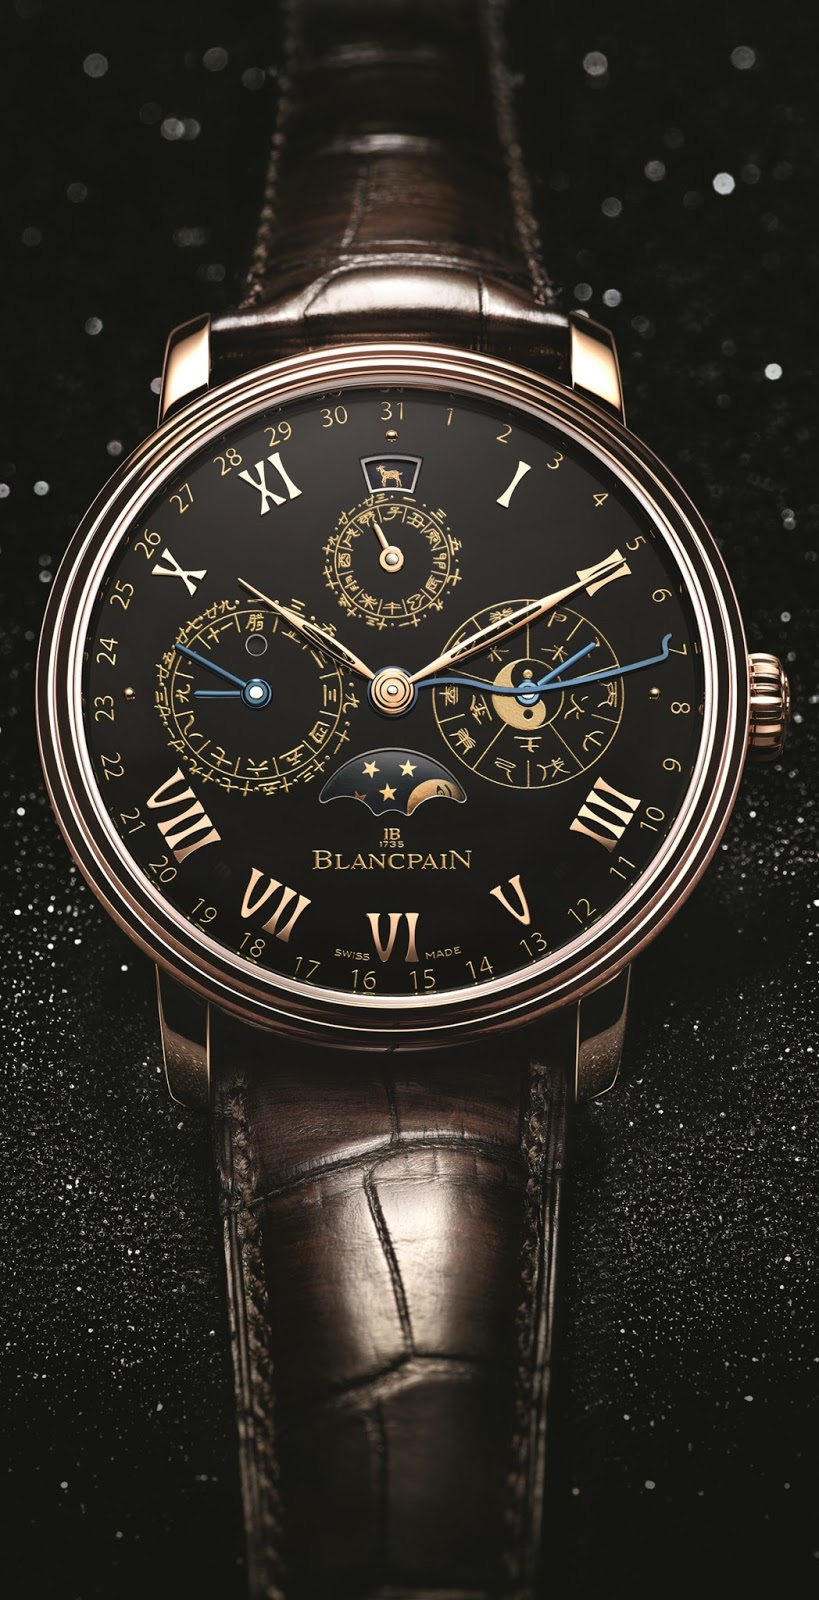 Rose gold blancpain traditional chinese calendar watch replica